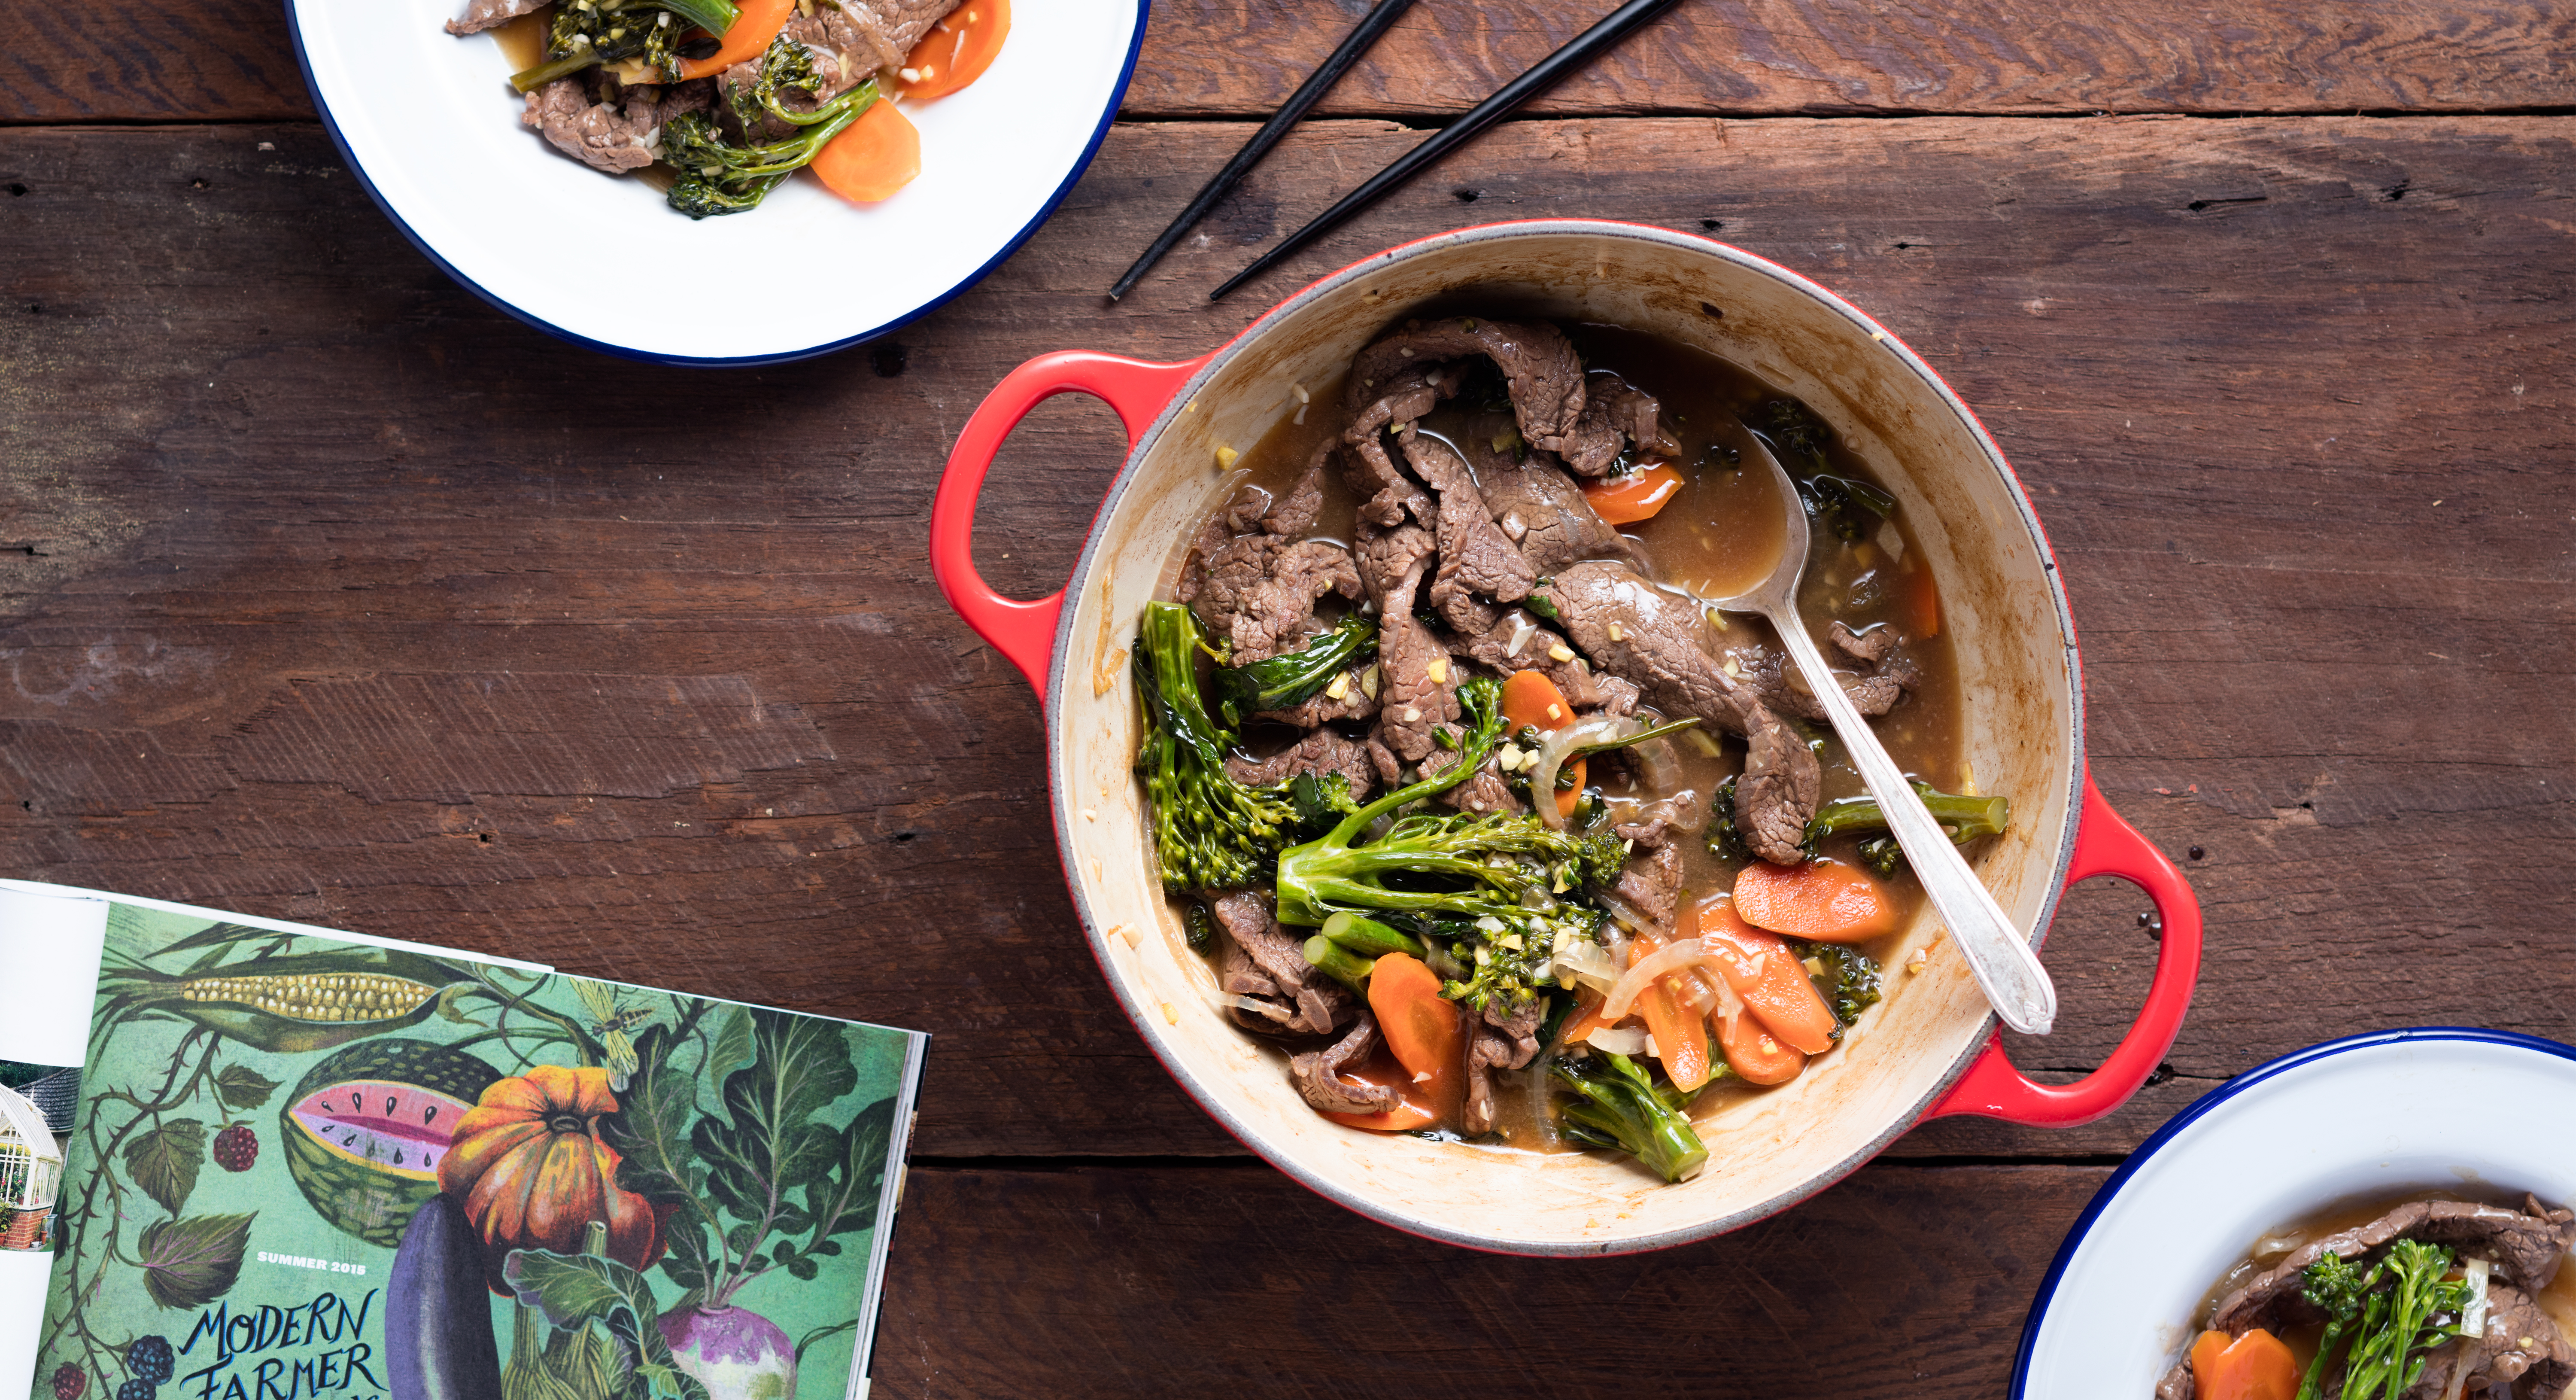 Dinner Tonight: Cook Up This Beef and Broccolini Stir-Fry In Just 30 Minutes